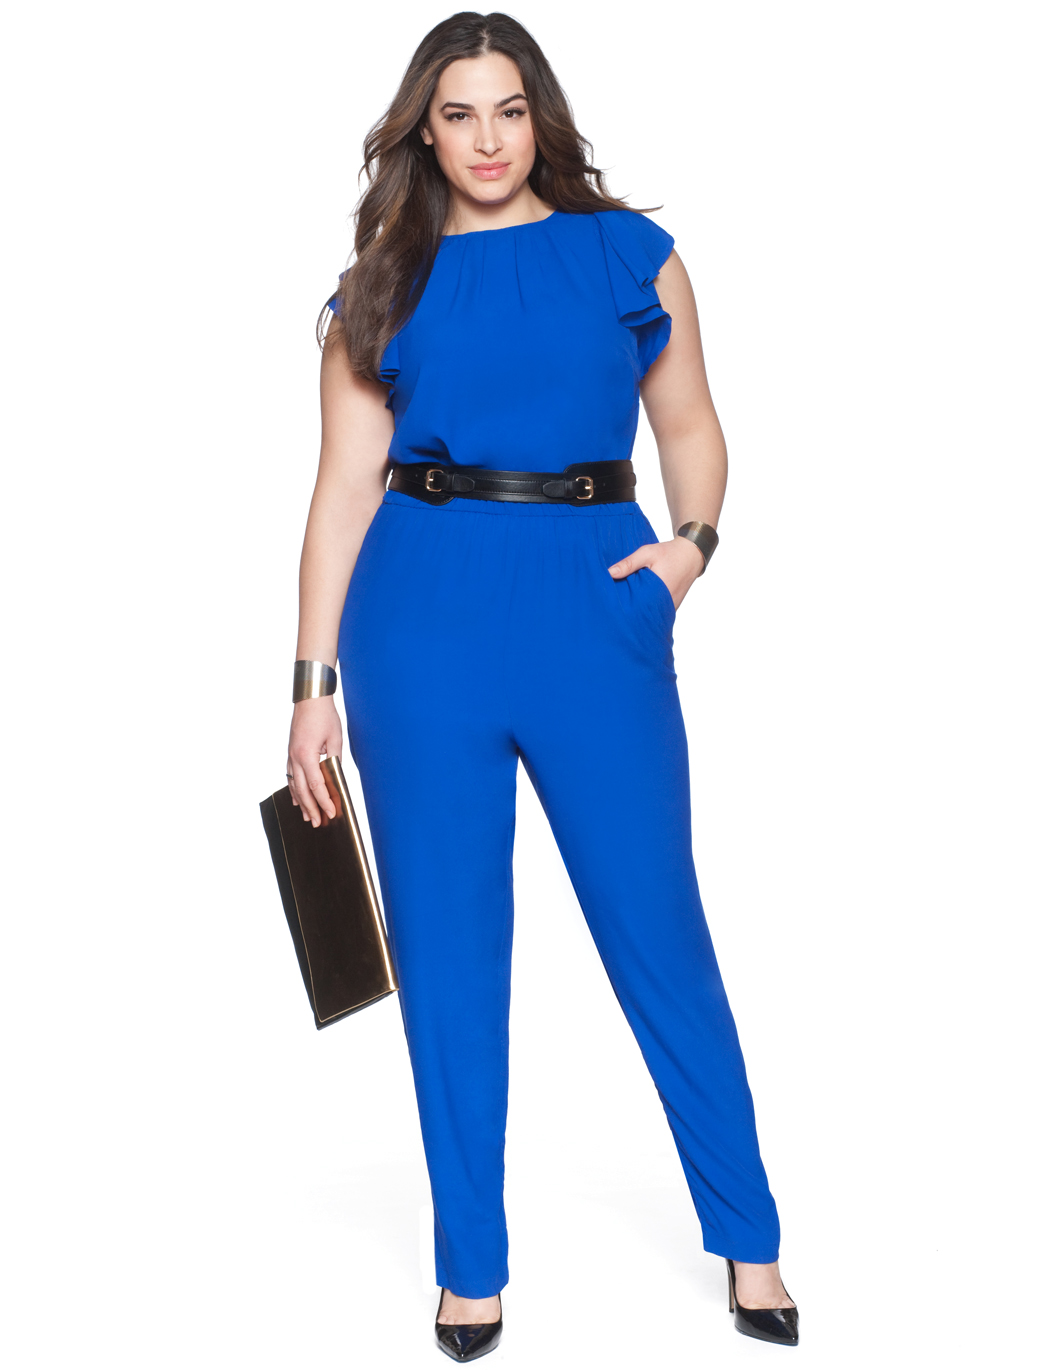 12 Plus Size Jumpsuits Perfect For Your Body Type | Stylish Curves